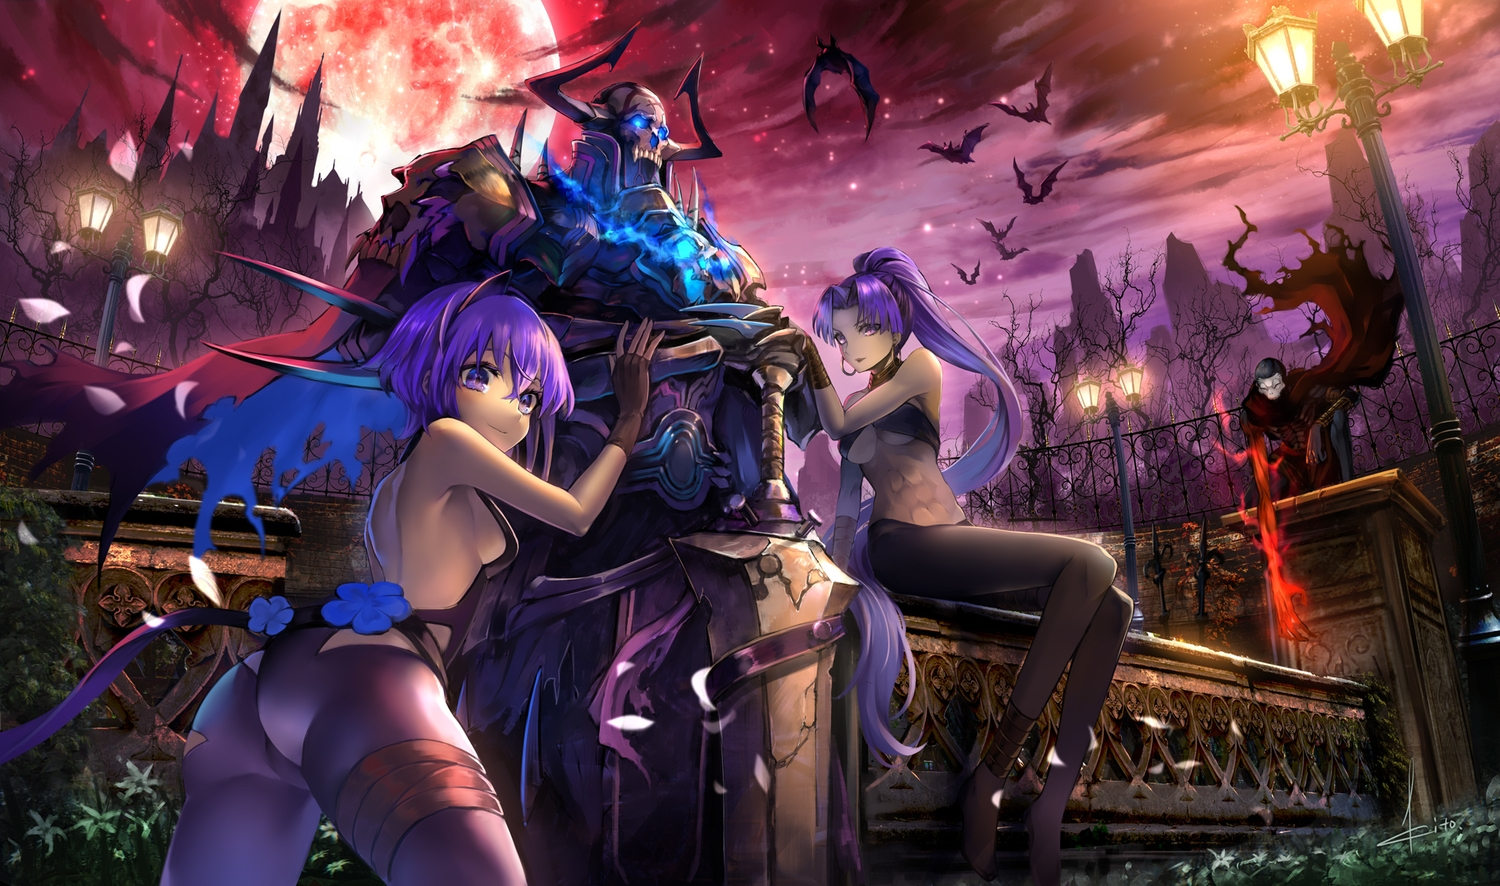 animal bat cape clouds fate/grand_order fate_(series) flowers hassan_of_serenity king_hassan kito_(kito2) long_hair male moon night ponytail purple_eyes purple_hair signed sky sword true_assassin weapon